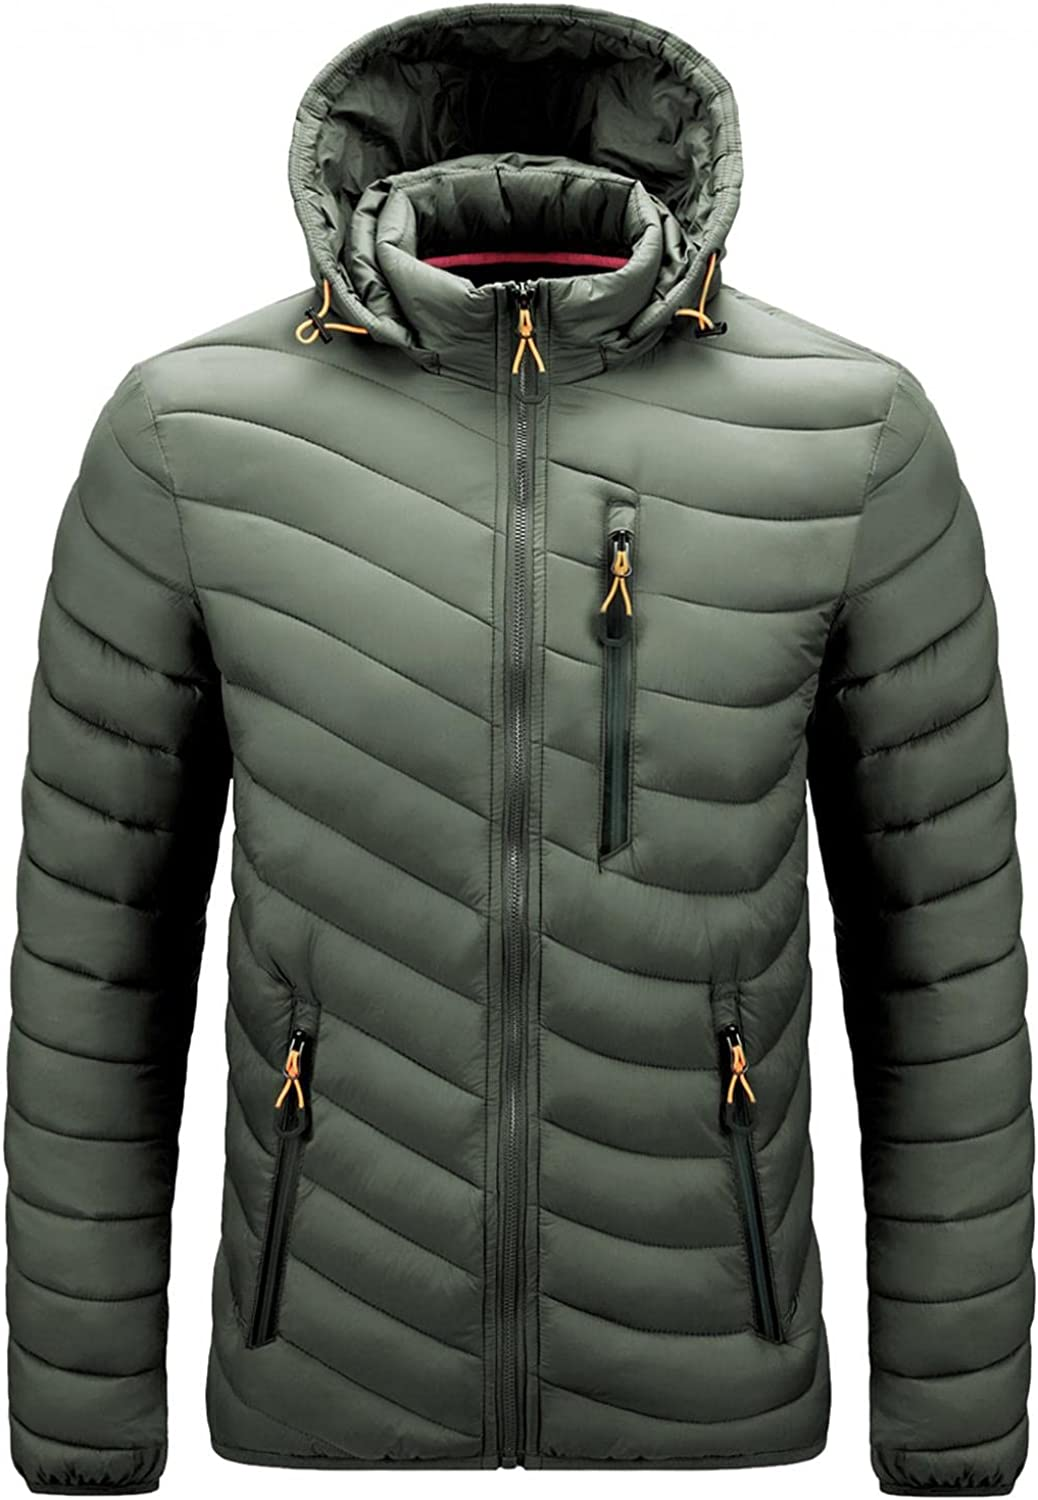 WUAI-Men Down Hoodies Jackets Winter Warm Thicken Classic Outdoor Side Pockets Padded Quilted Puffer Jackets Outwear